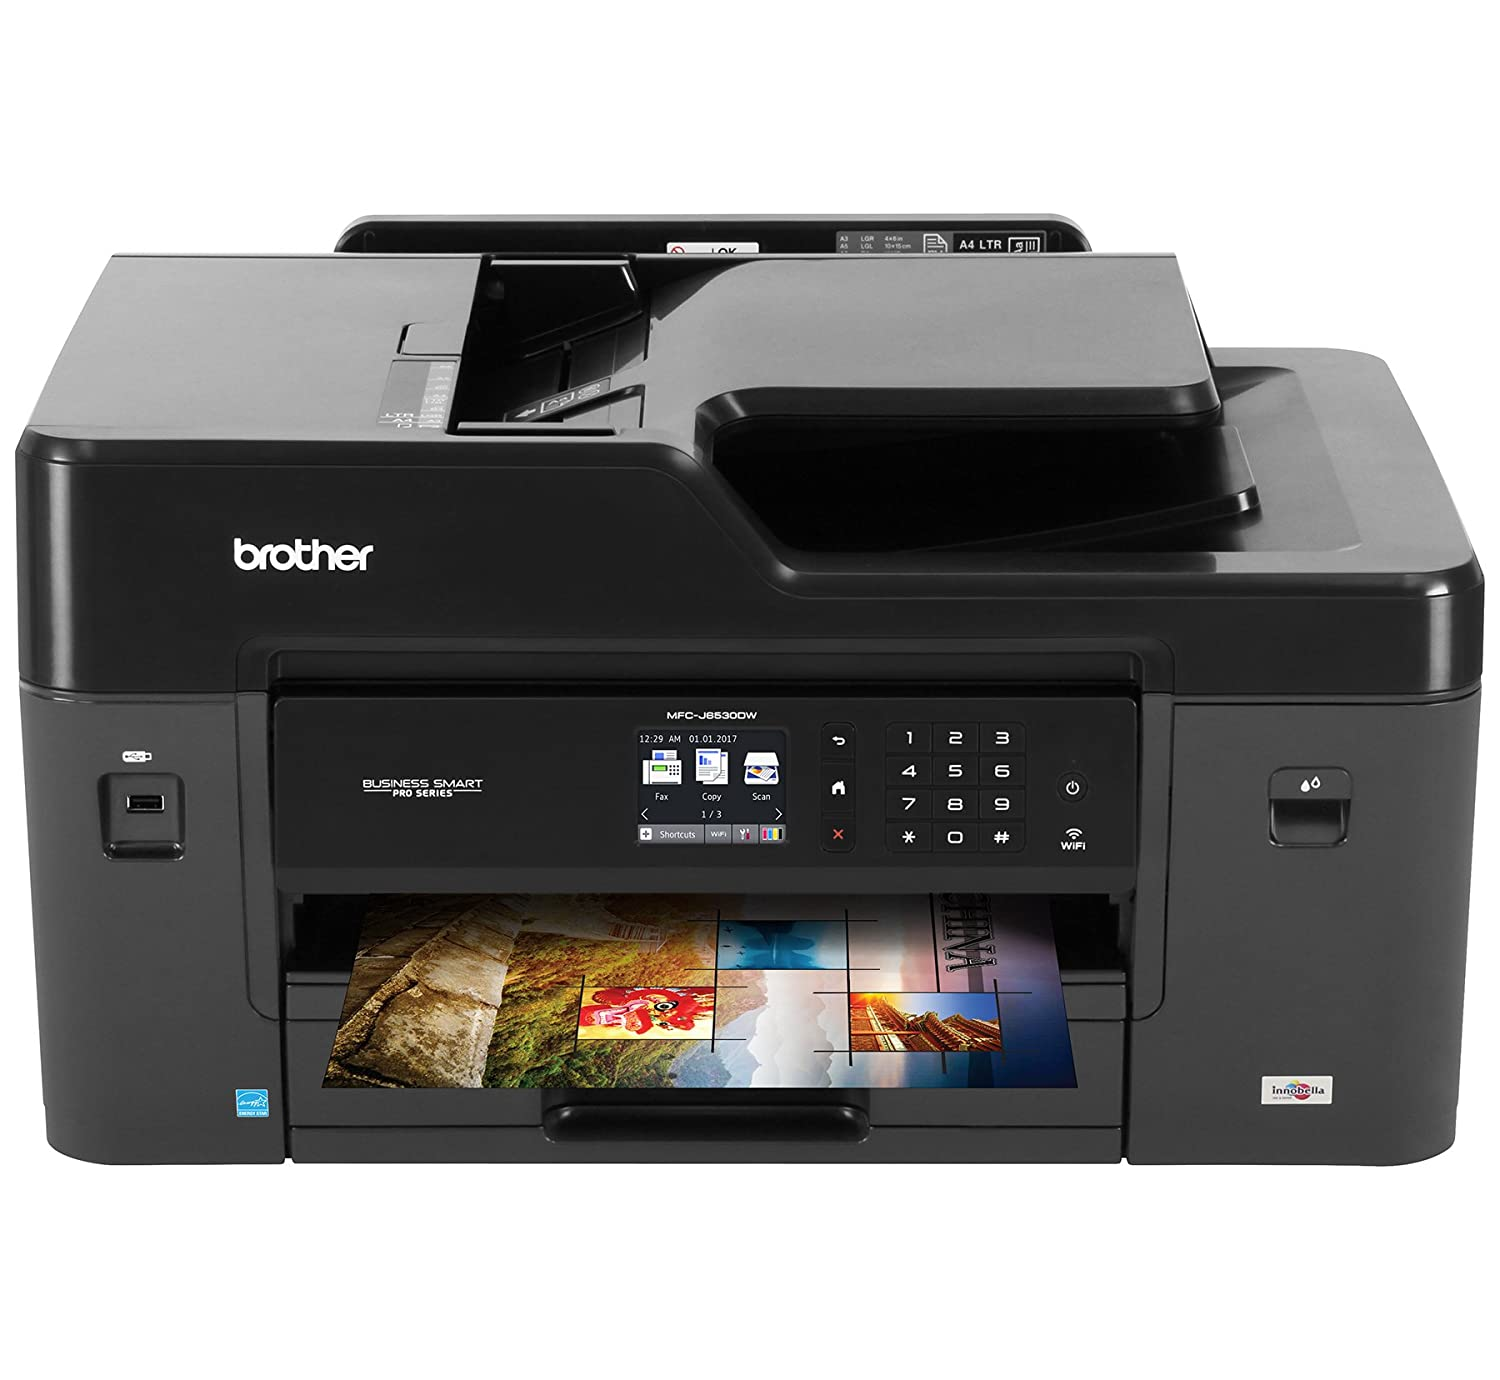 Brother MFCJ6530DW Wireless Color Printer with Scanner, Copier & Fax Brother Canada - CE